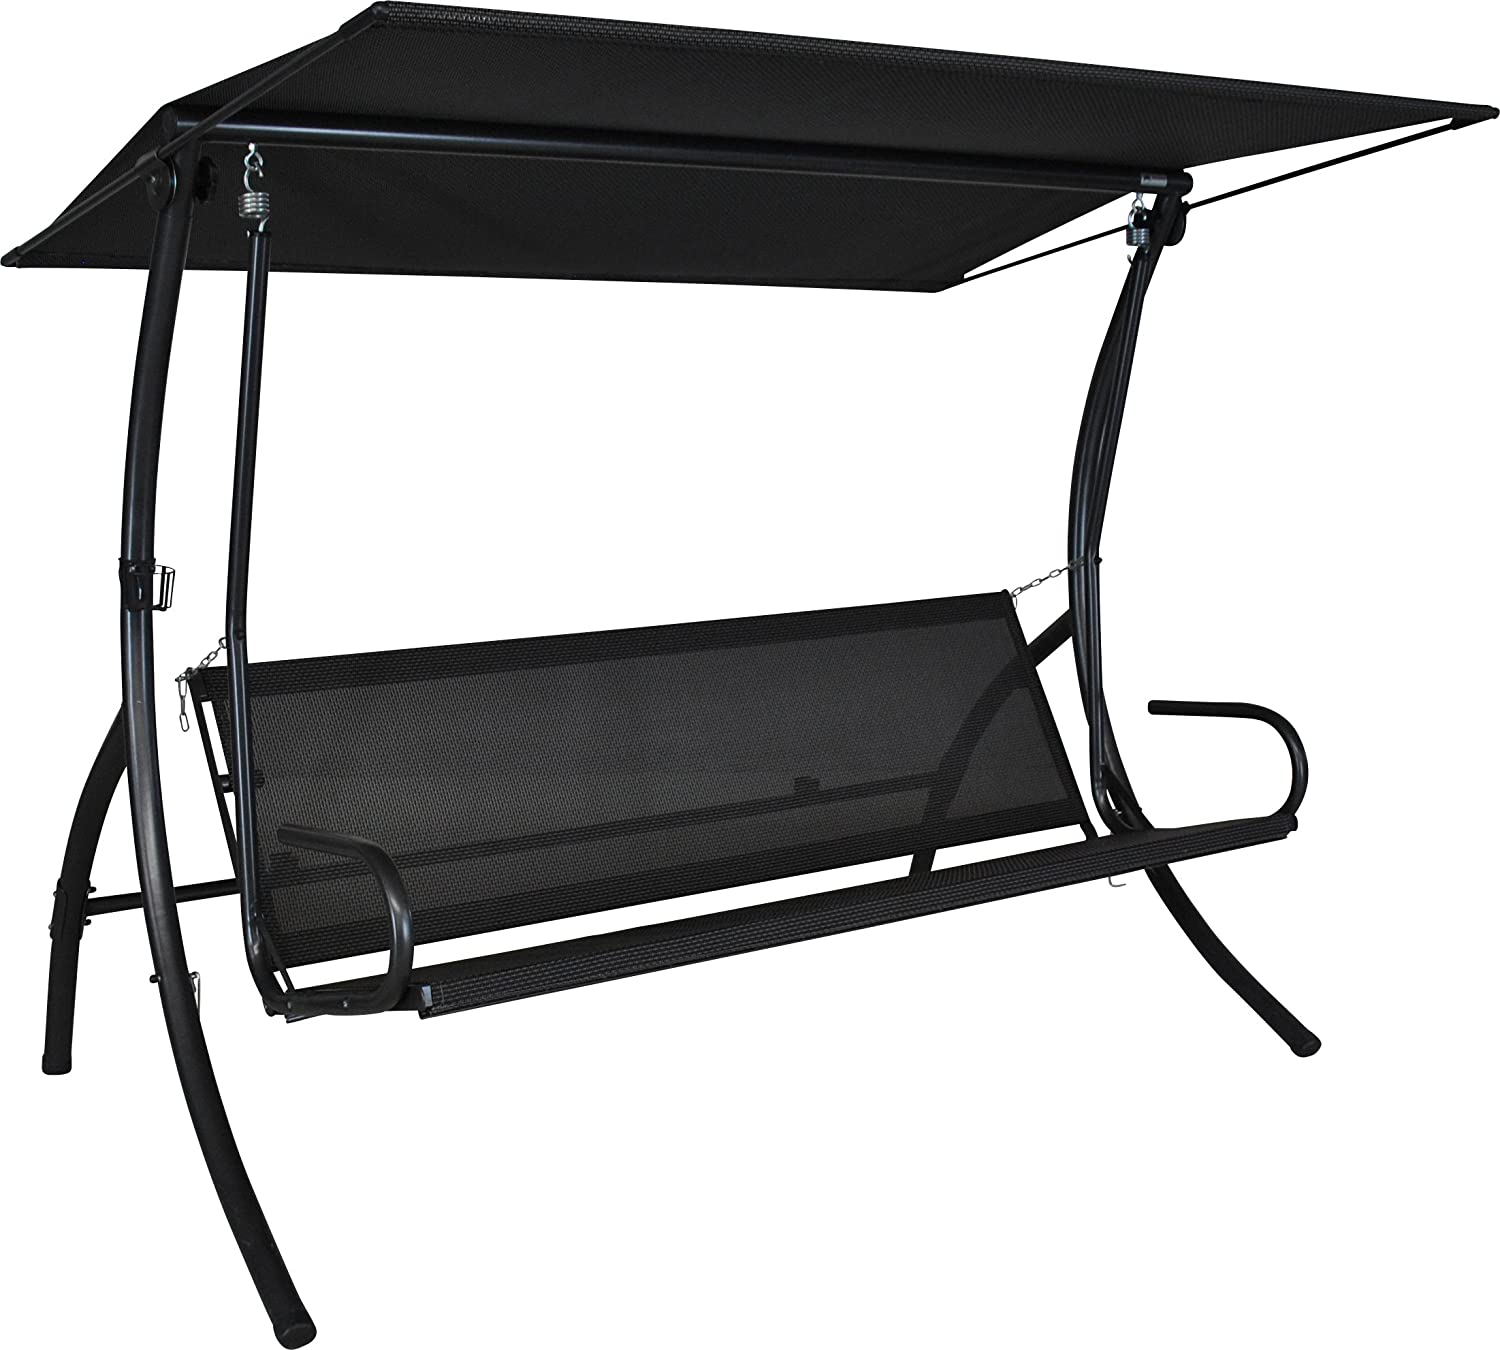 Amazon.de: Angerer 441200/207/21 Elegance Joy Hollywoodschaukel Joy ...